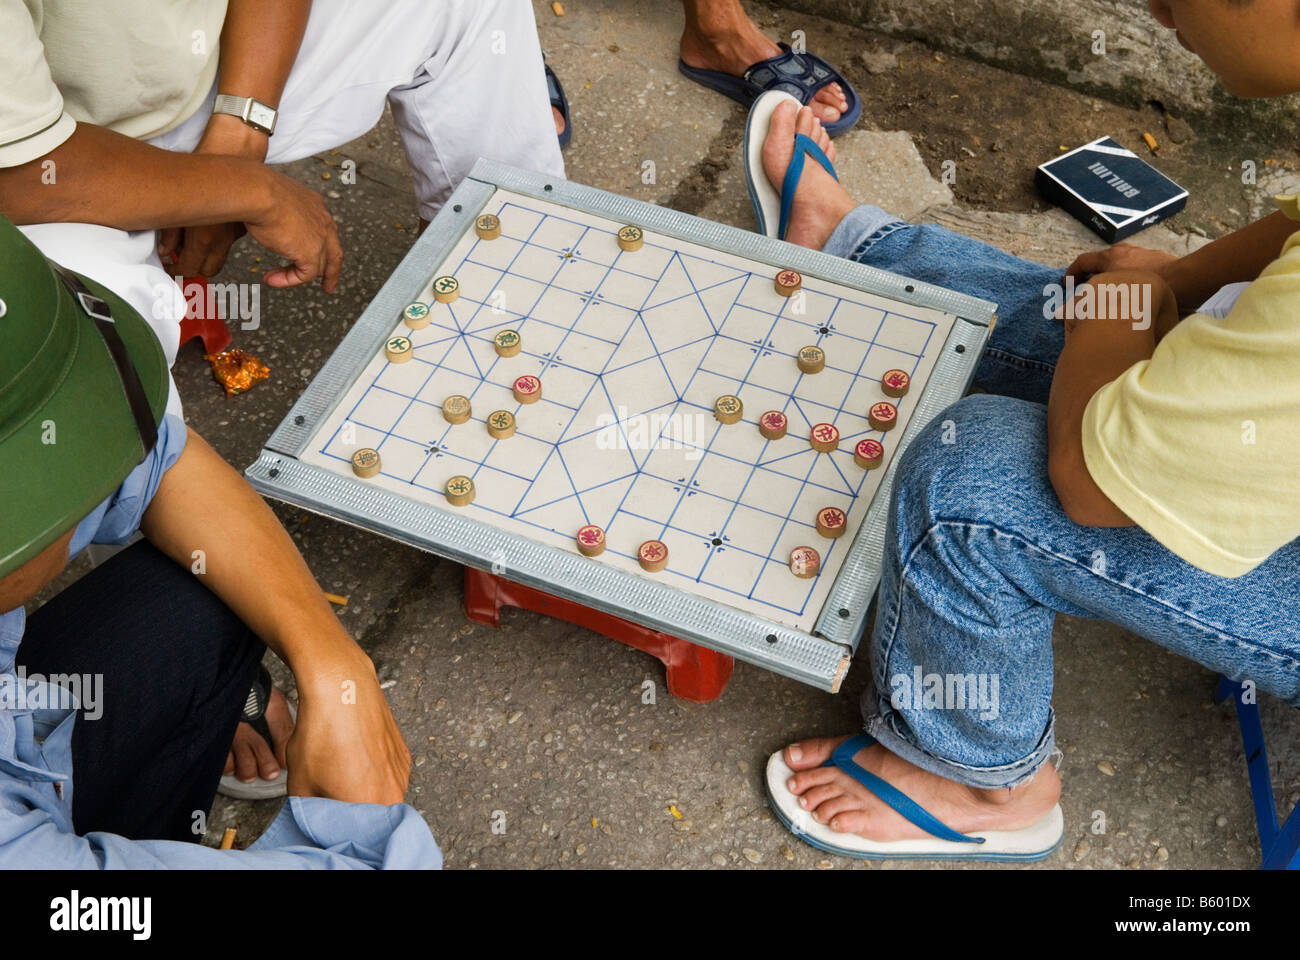 Men playing Xiangqi - Chinese Chess or Vietnamese Chess on the streets of Ho Chi Minh City, Vietnam - Stock Image